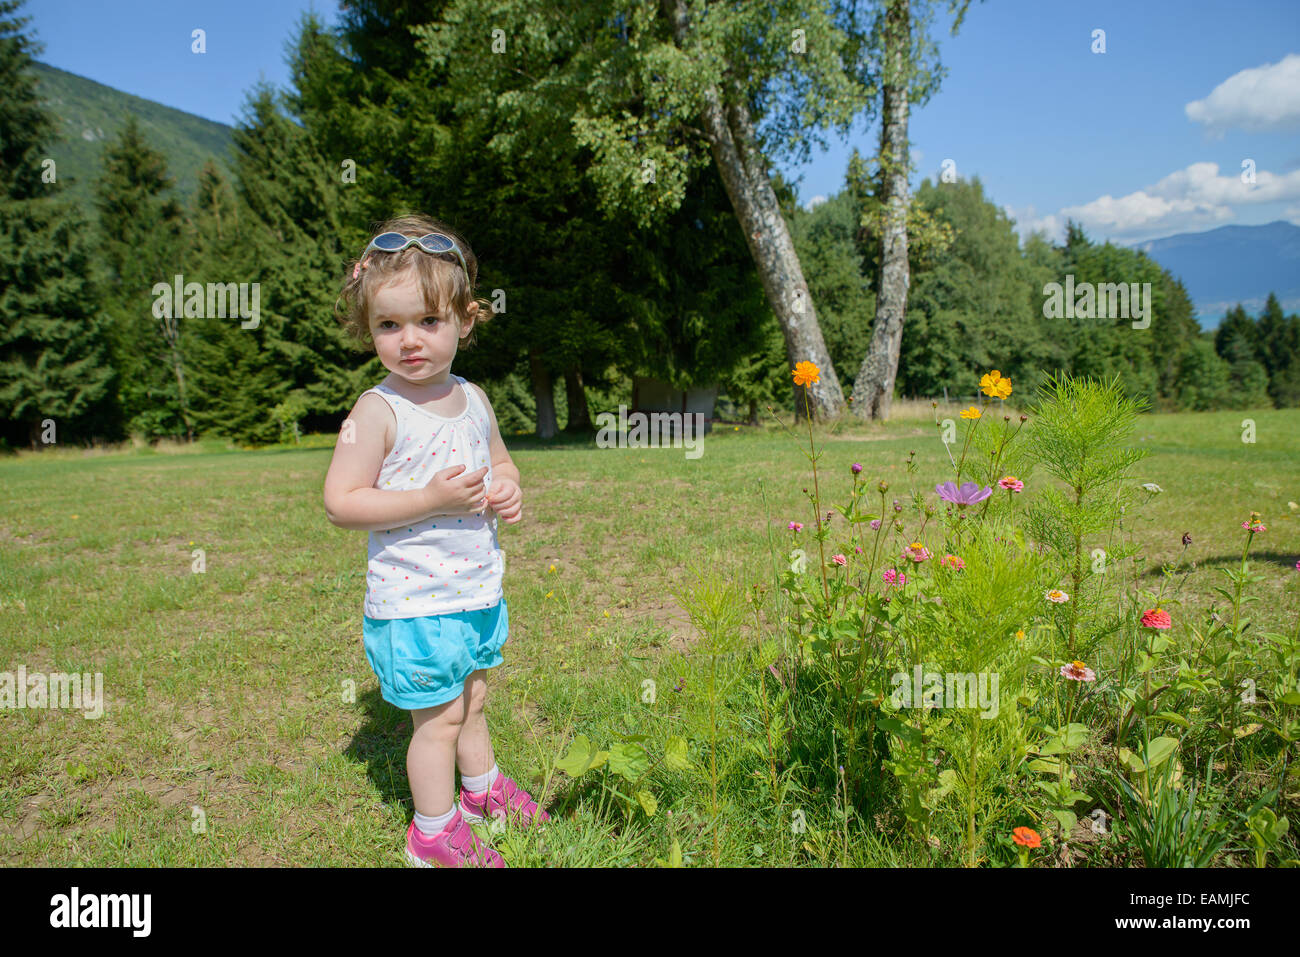 A Pretty Little Girl Playing With Flowers In The Garden And She Look